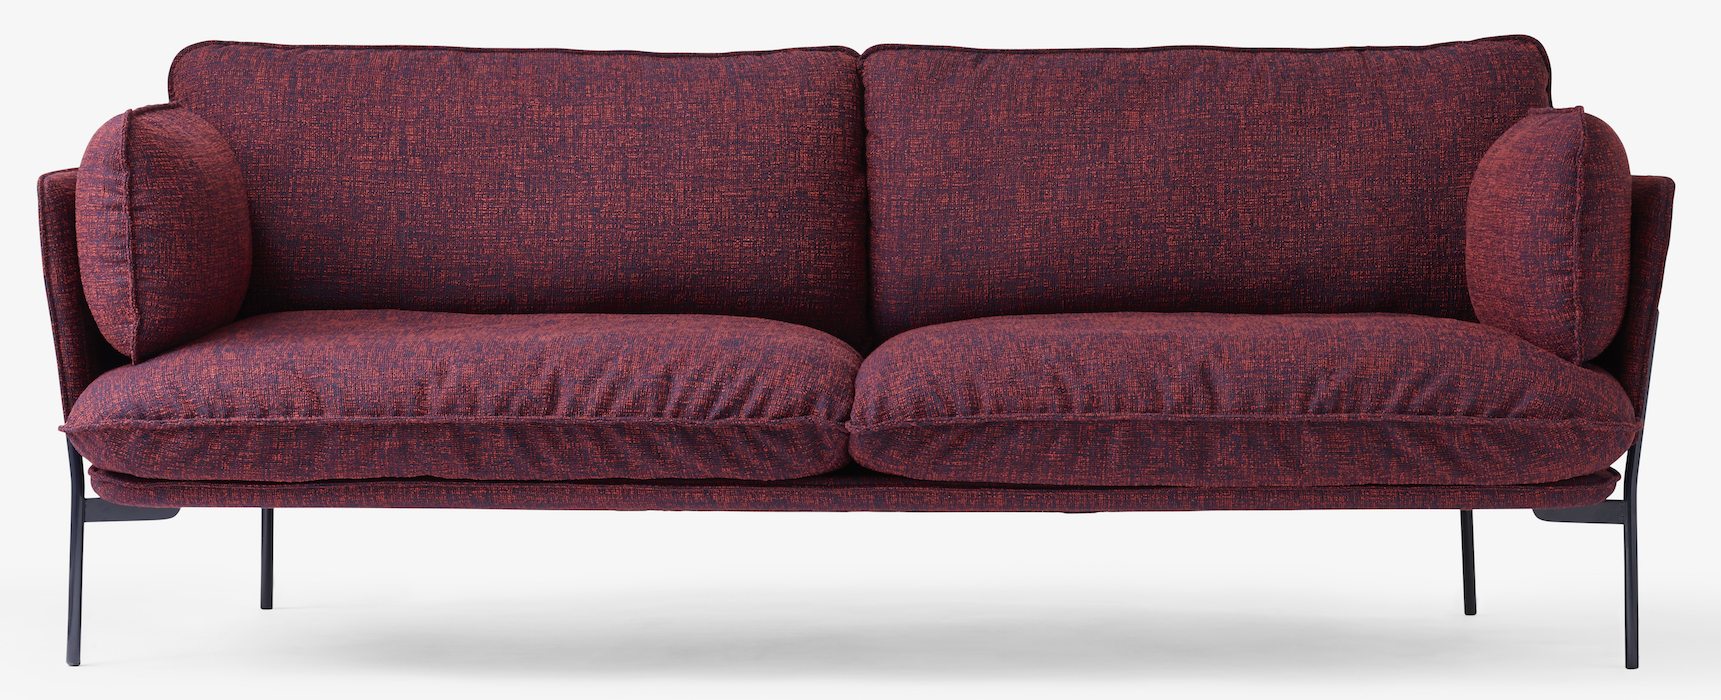 &Tradition - Cloud sofas, armchairs and poufs - Luca Nichetto